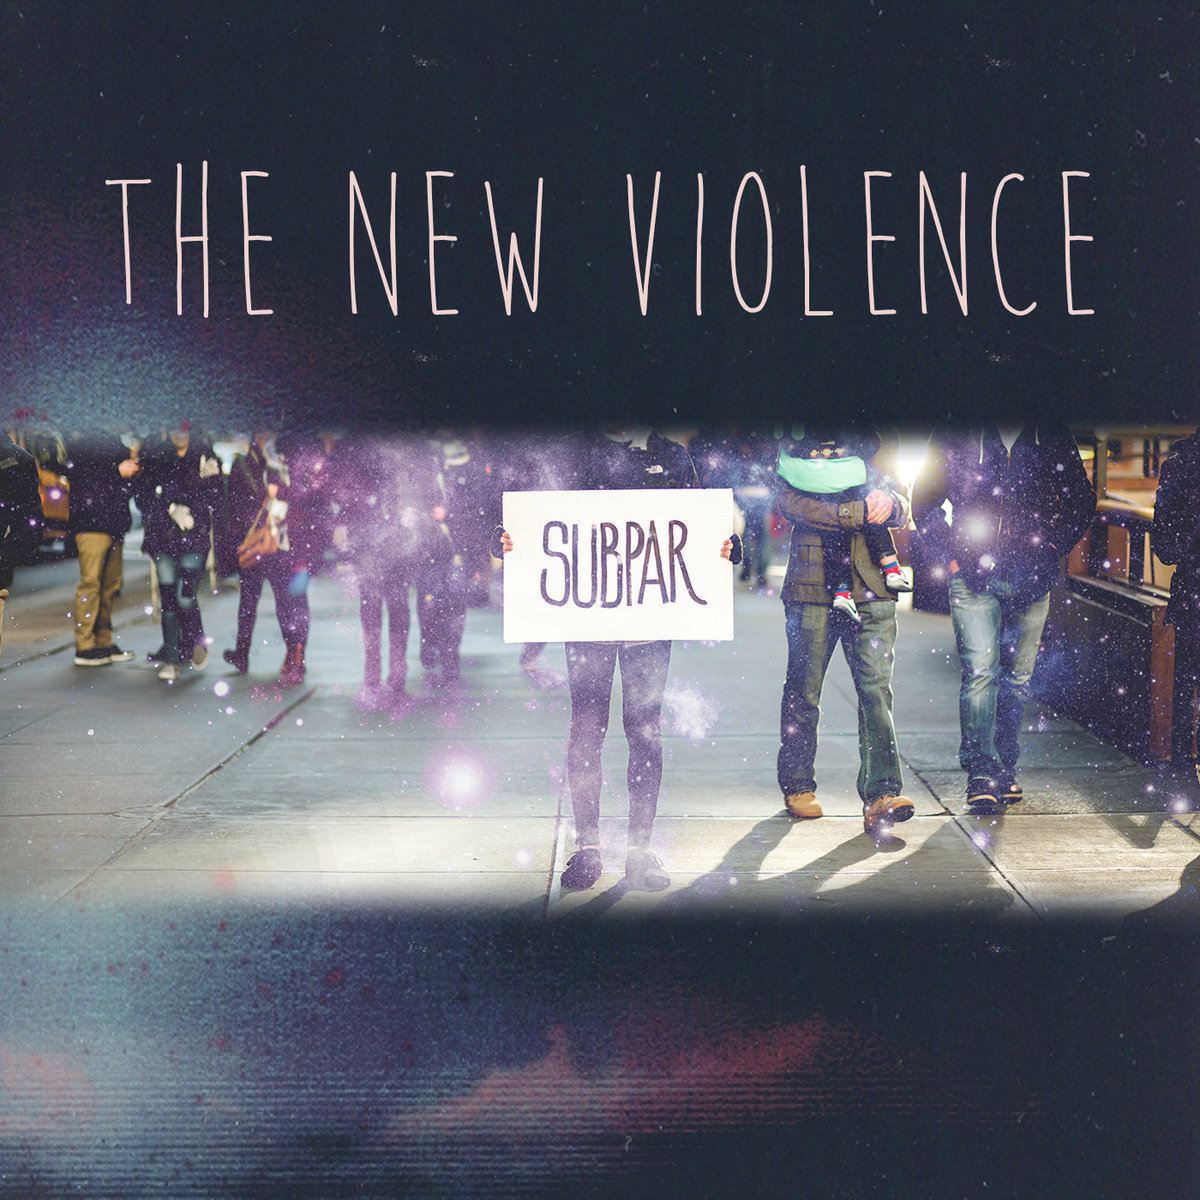 The New Violence - Subpar [single] (2016)